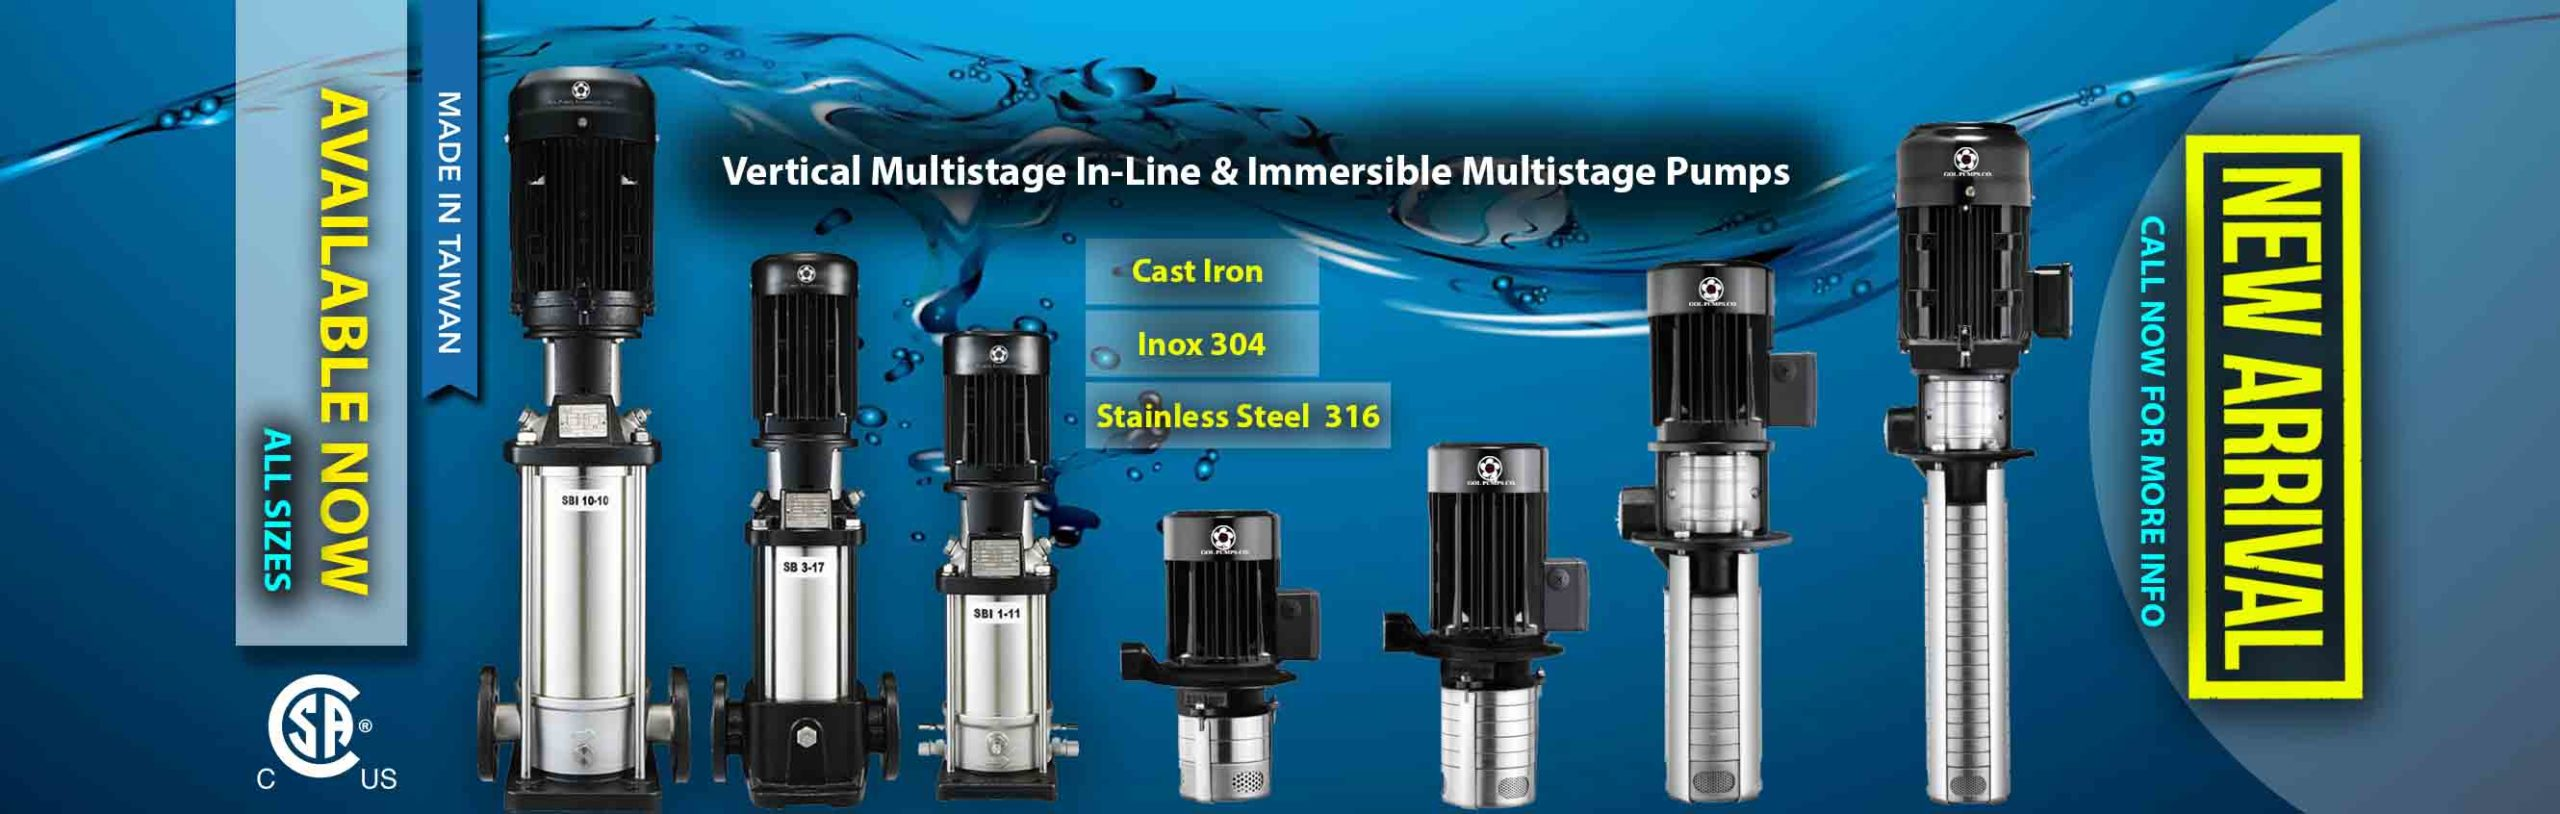 Gol Pumps-Pumpdepot-Multistage Vertical Pumps and immersible pumps